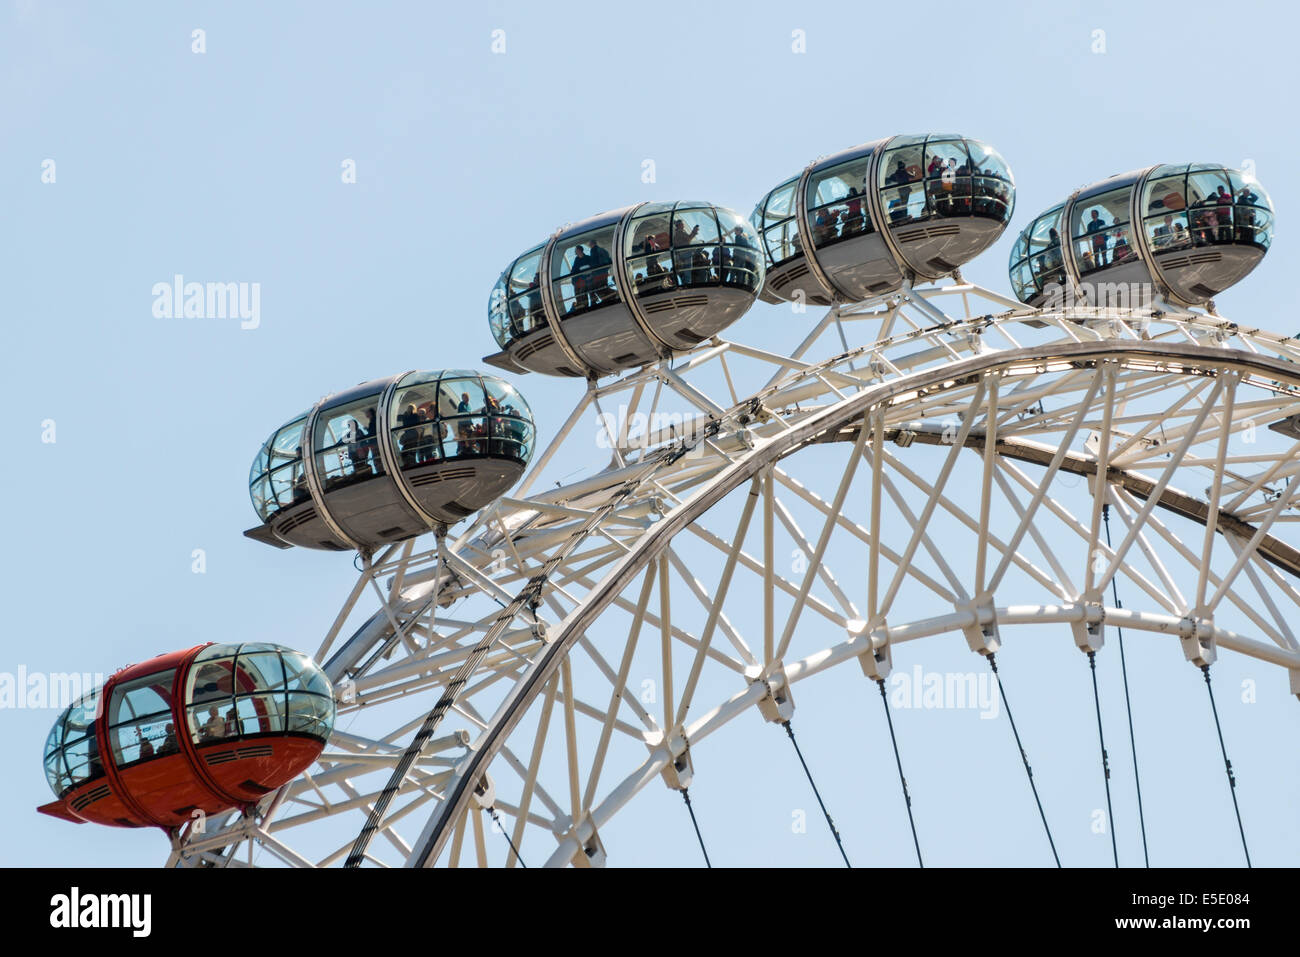 Customer pods on the London Eye, a giant Ferris wheel on the South Bank of the River Thames in London - Stock Image